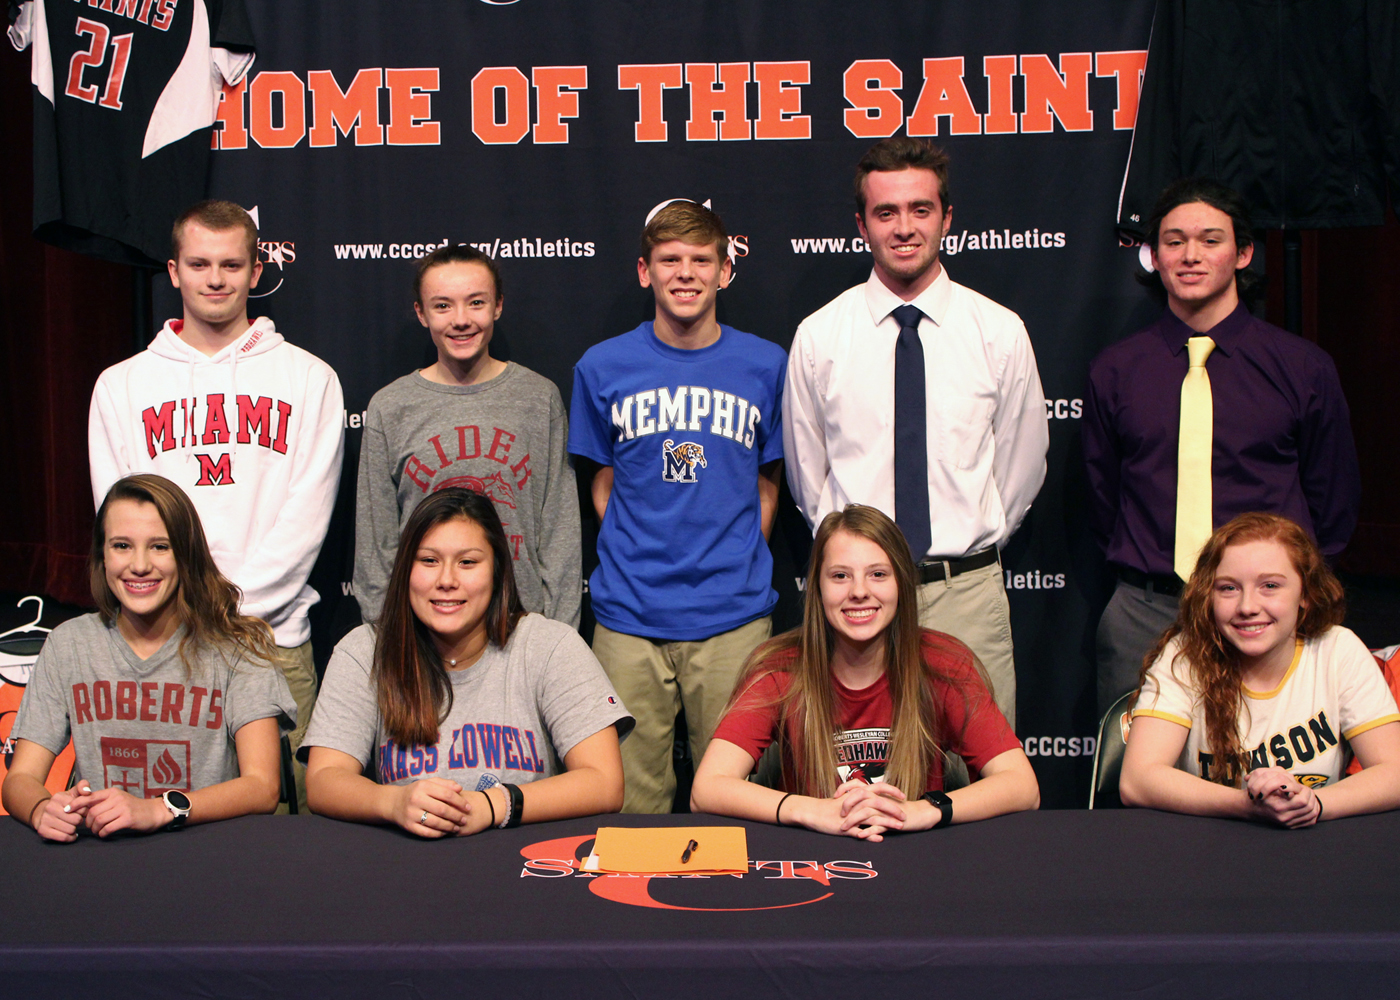 Nine C-C student athletes prepare for outstanding careers in college sport. (Back, l-r) Brandon Crist, Haley Arguien, Payton Gleason, Jacob Buck, Corey Yunker. (Front, l-r) Kyilee Quayle, Meredith Woo, Kelsey Lathrop, Sarah DiGaetano. Provided photo